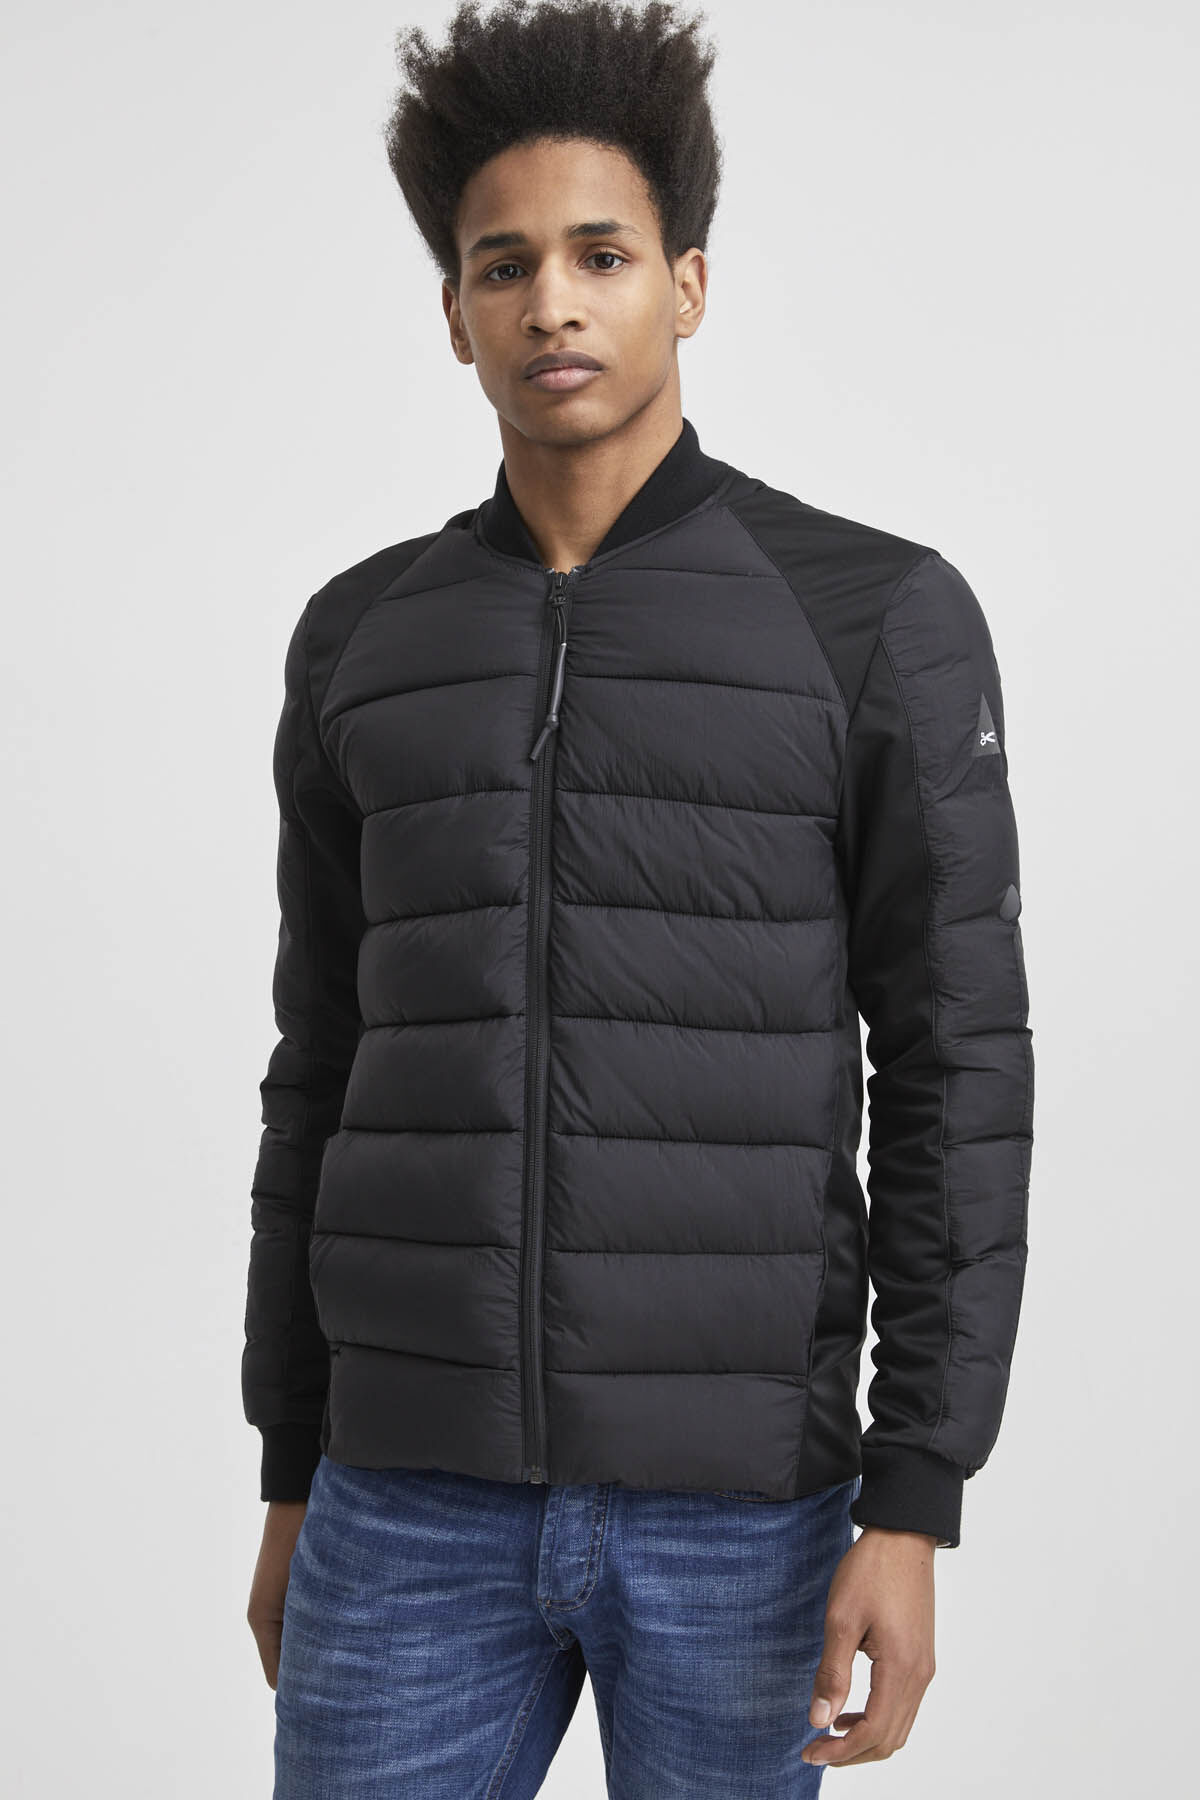 LYNX JACKET Quilted Nylon - Slim Fit